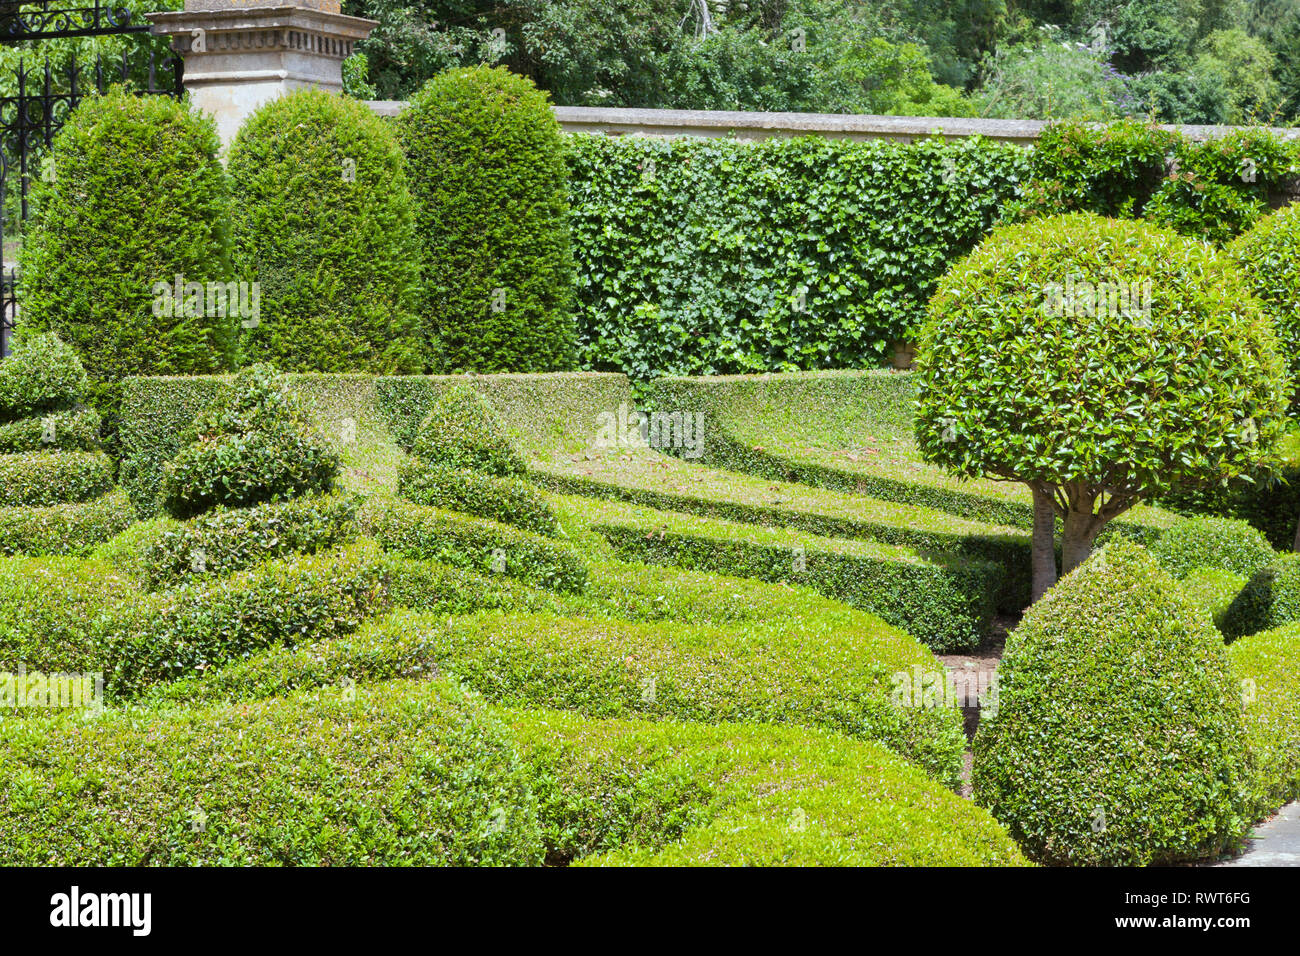 Topiary Garden With Trimmed Hedge Designed Bushes In Different